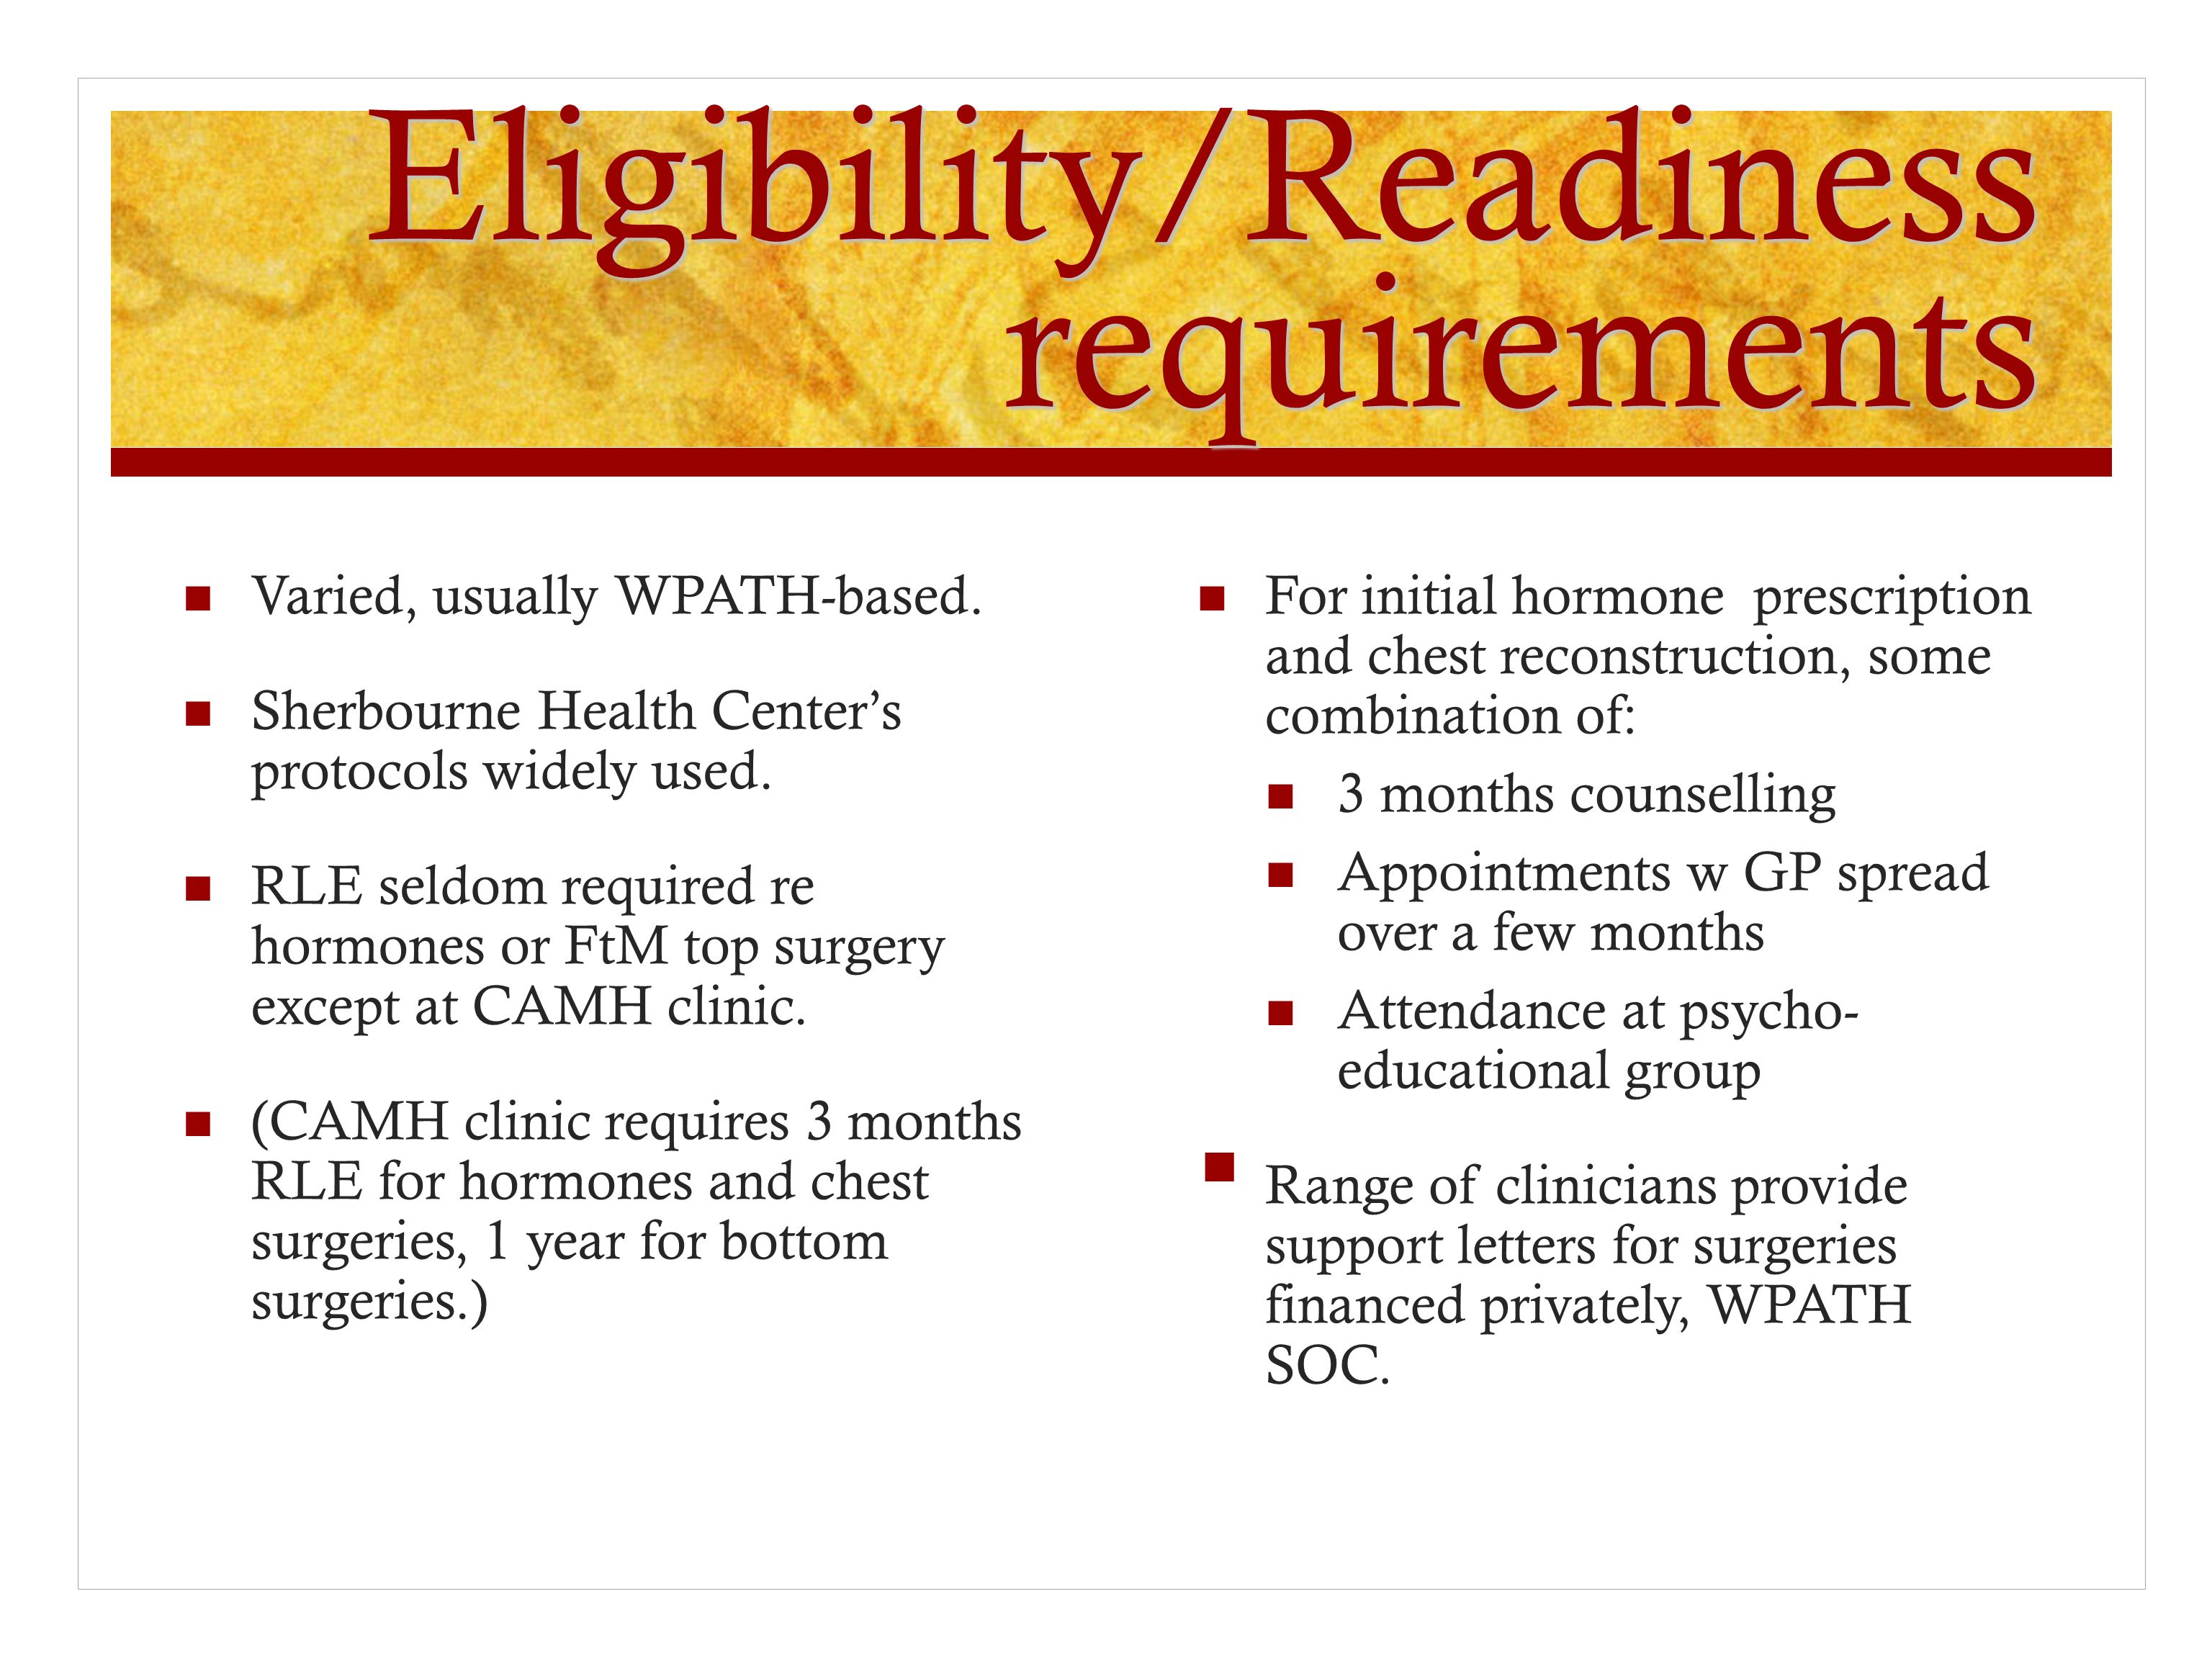 Eligibility/Readiness requirements